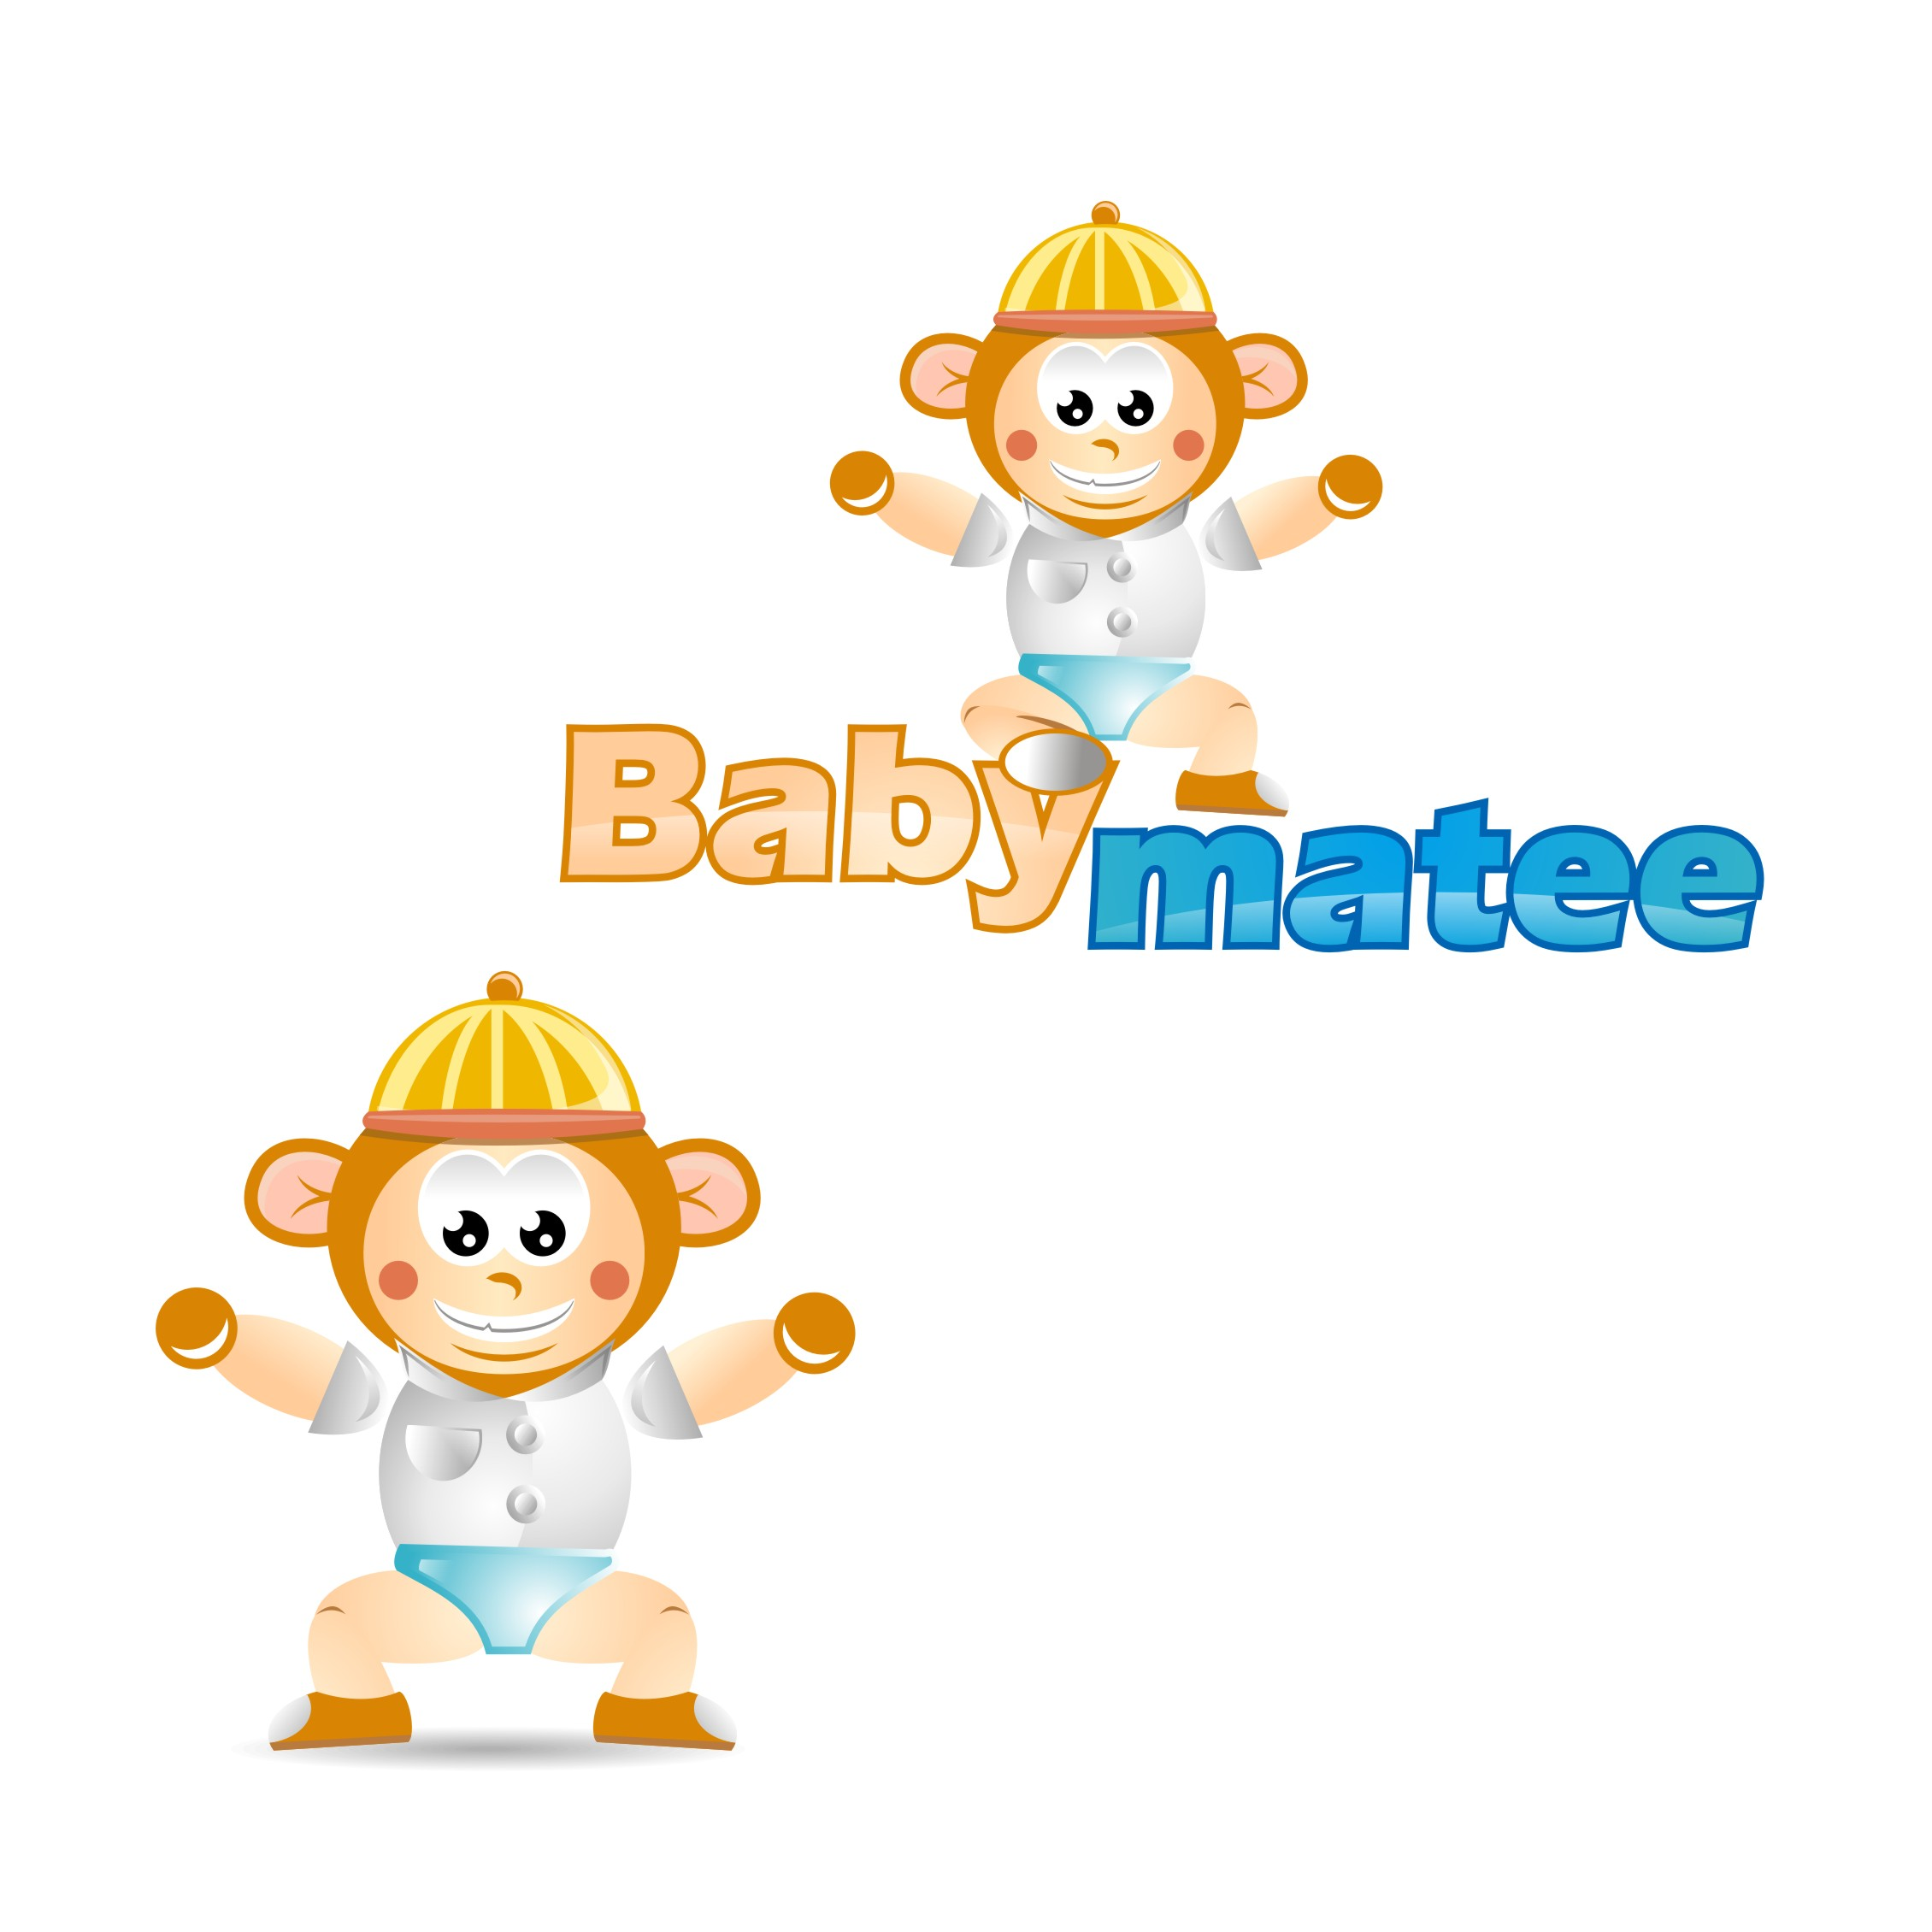 Custom Design by Deni Budiwan - Entry No. 5 in the Custom Design Contest Creative Custom Design for Babymatee.